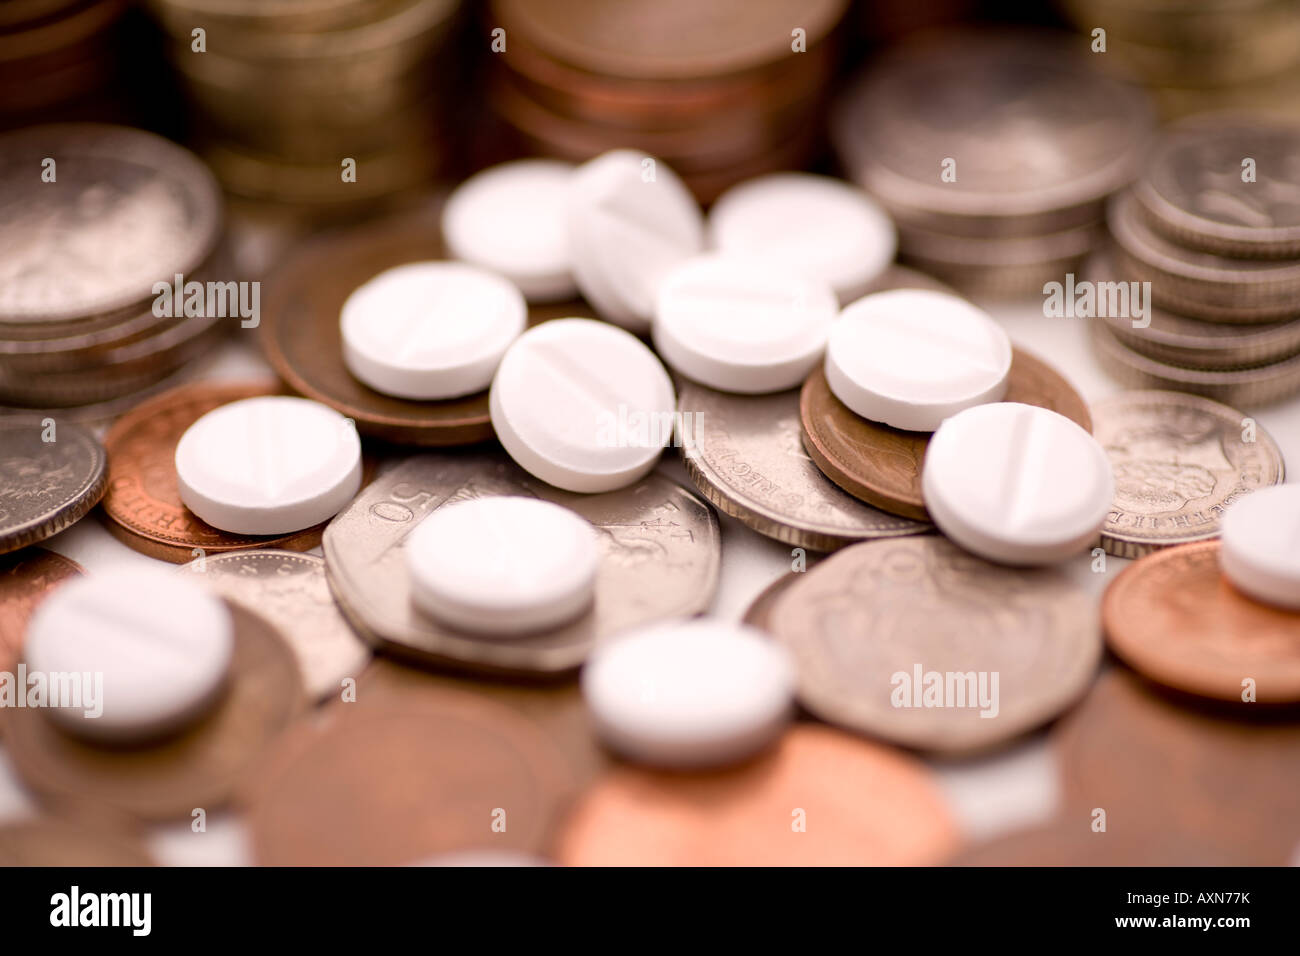 medicine costs pharmaceutical industry making money pills and coins